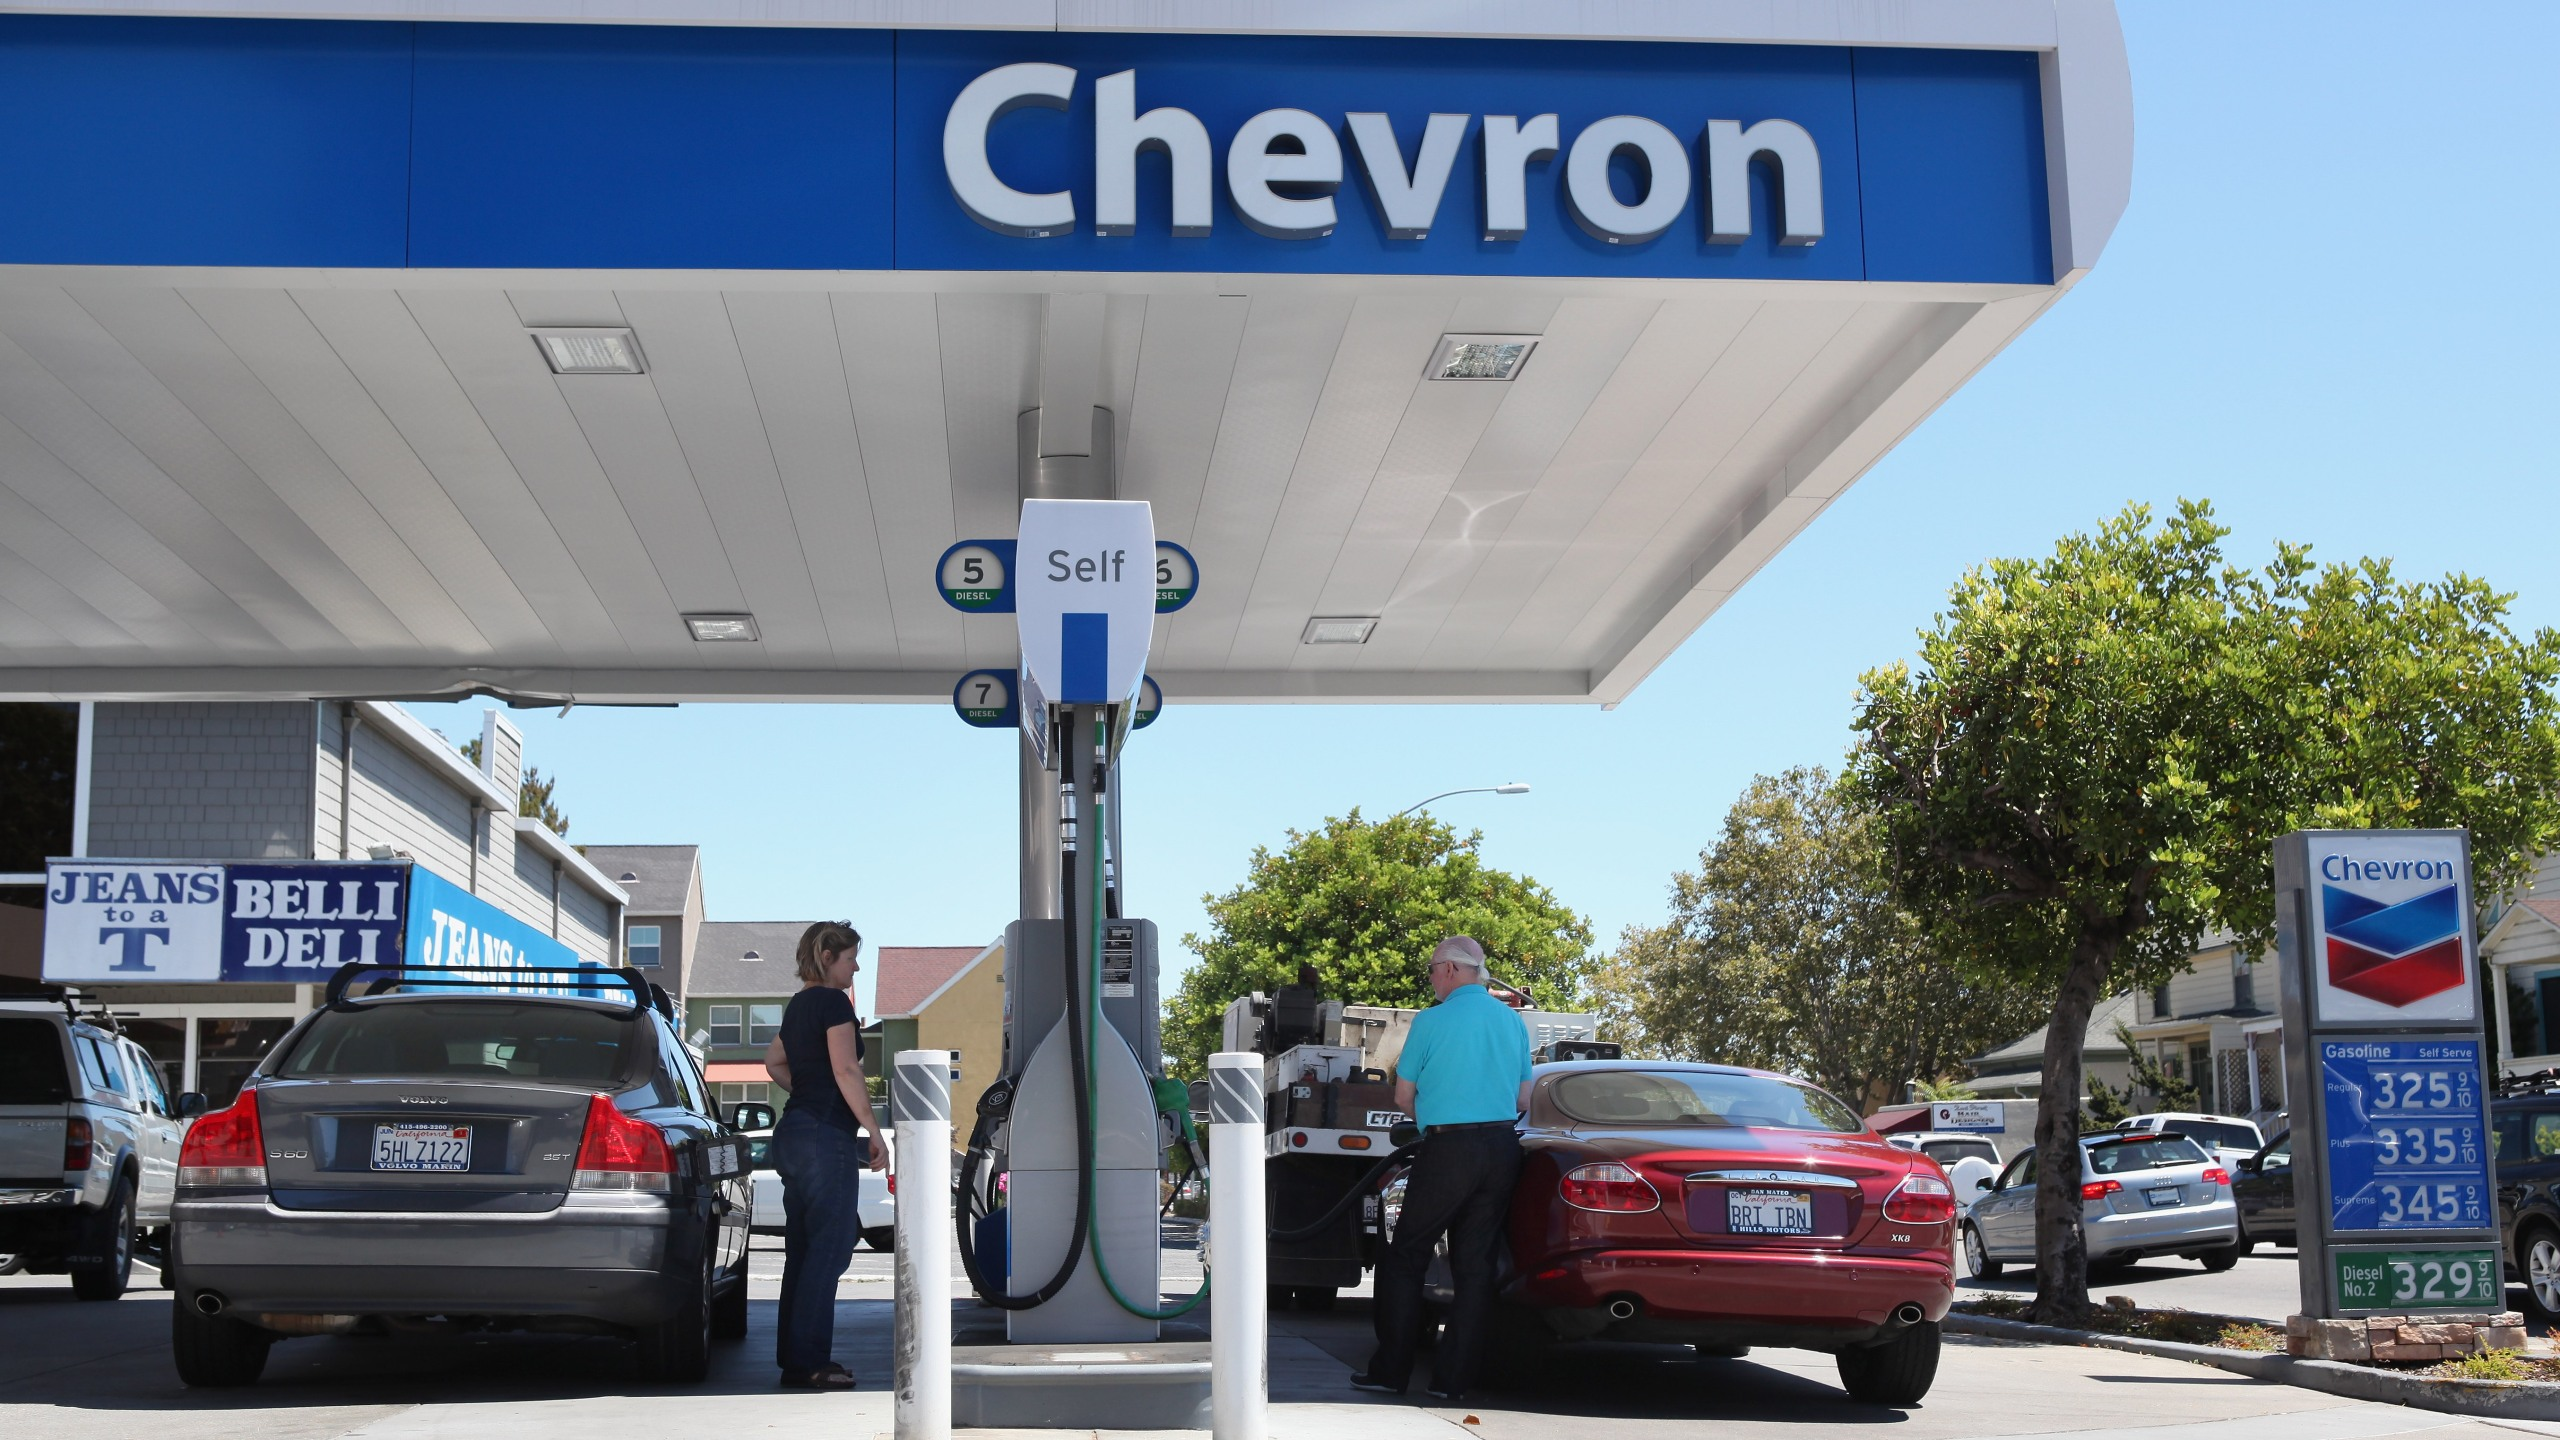 Customers pump gas into their cars at a Chevron gas station on Aug. 13, 2010 in San Rafael, California. (Credit: Justin Sullivan/Getty Images)